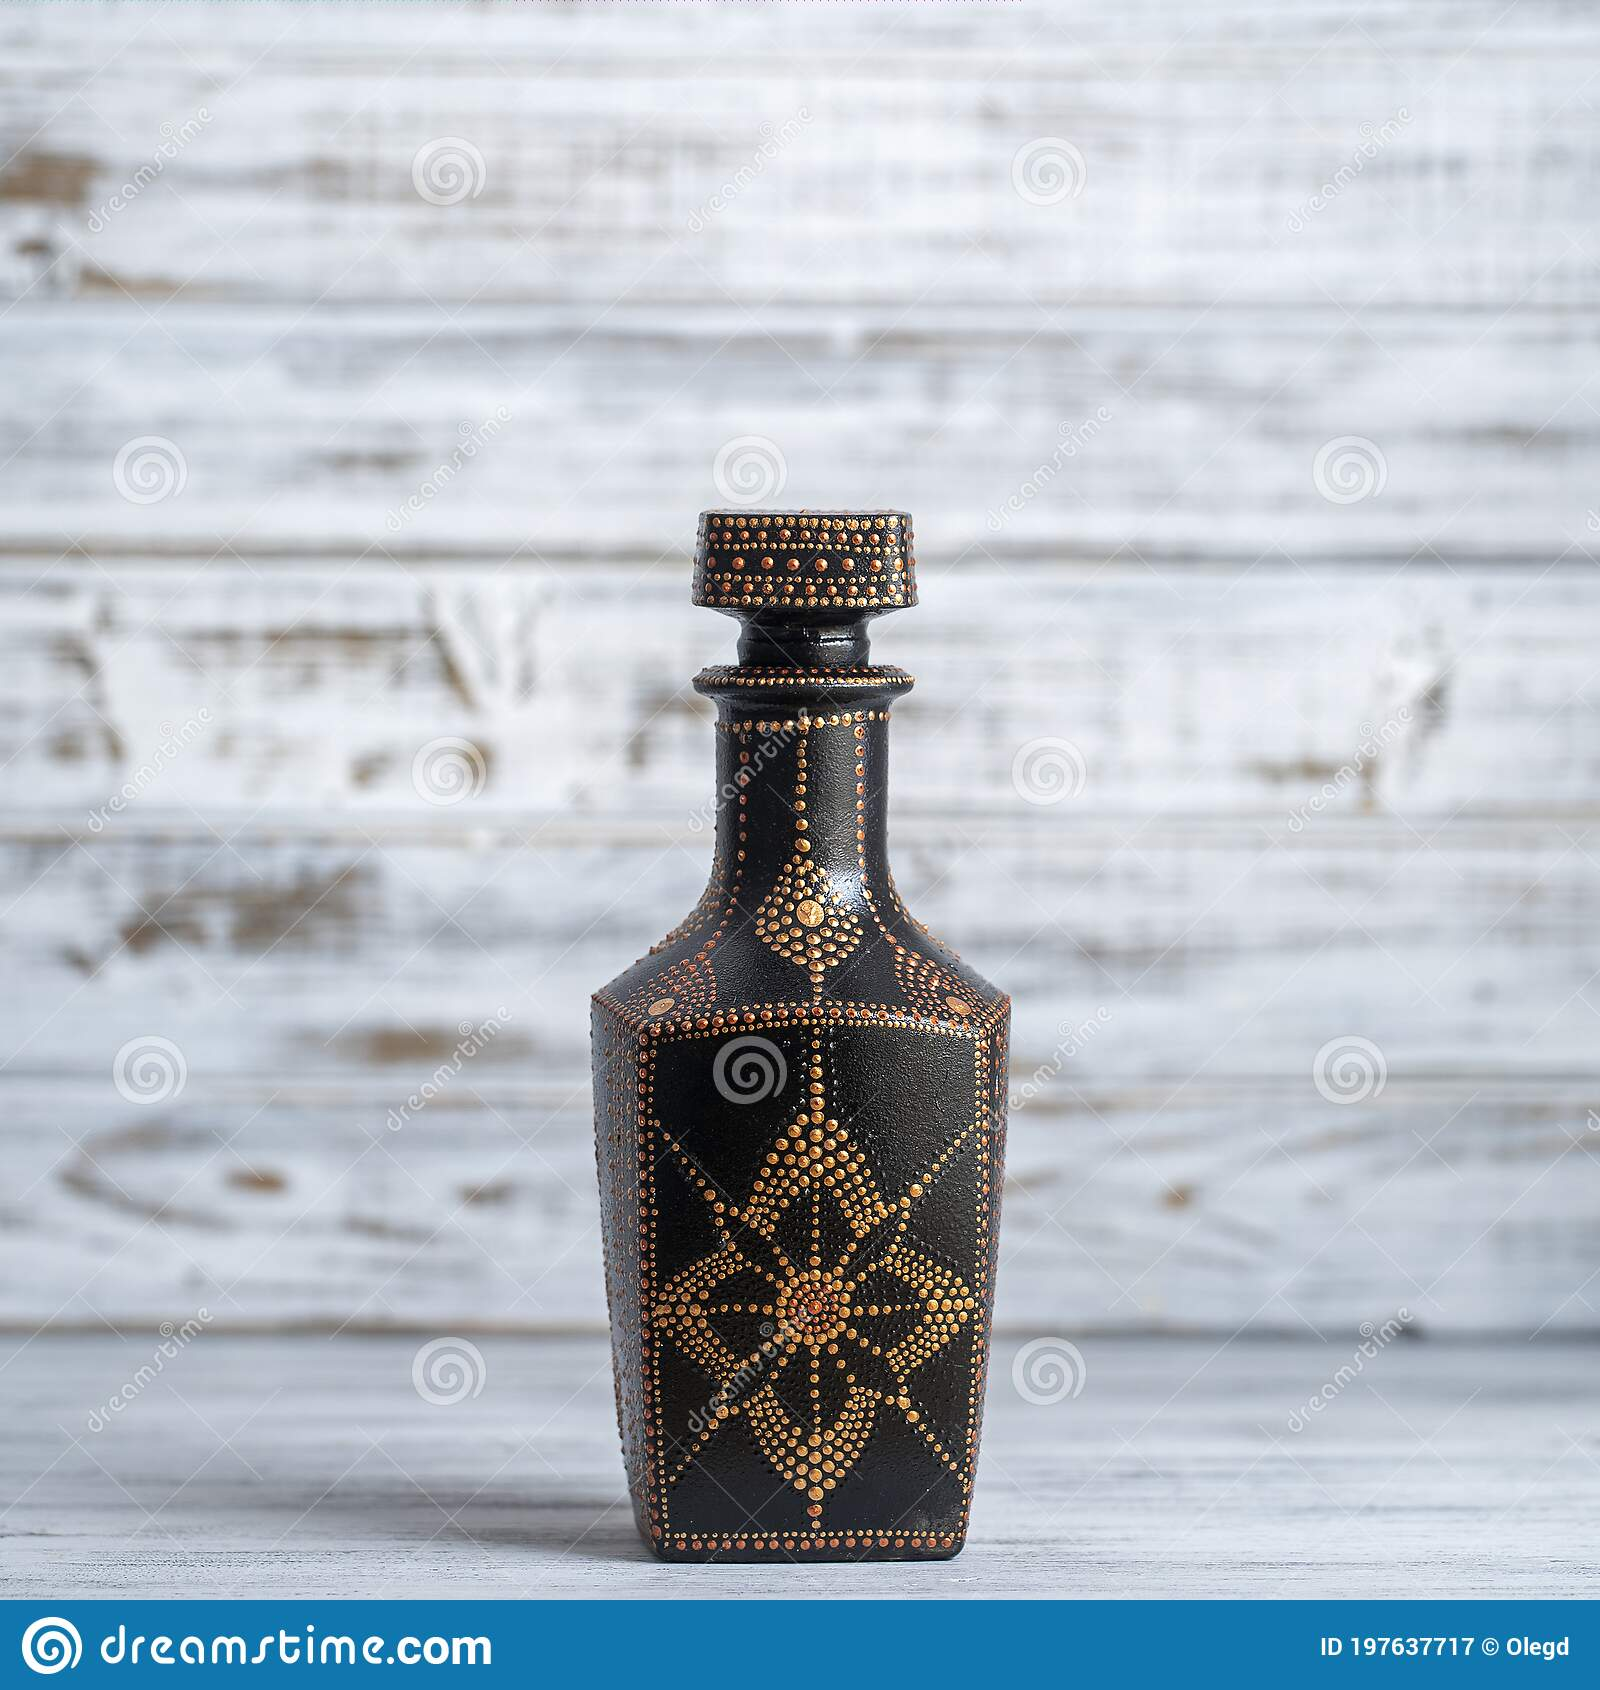 Decorative Ceramic Bottle With Black Red And Golden Colors Painted Bottle On White Wooden Background Dot Painting Stock Image Image Of Antique Background 197637717